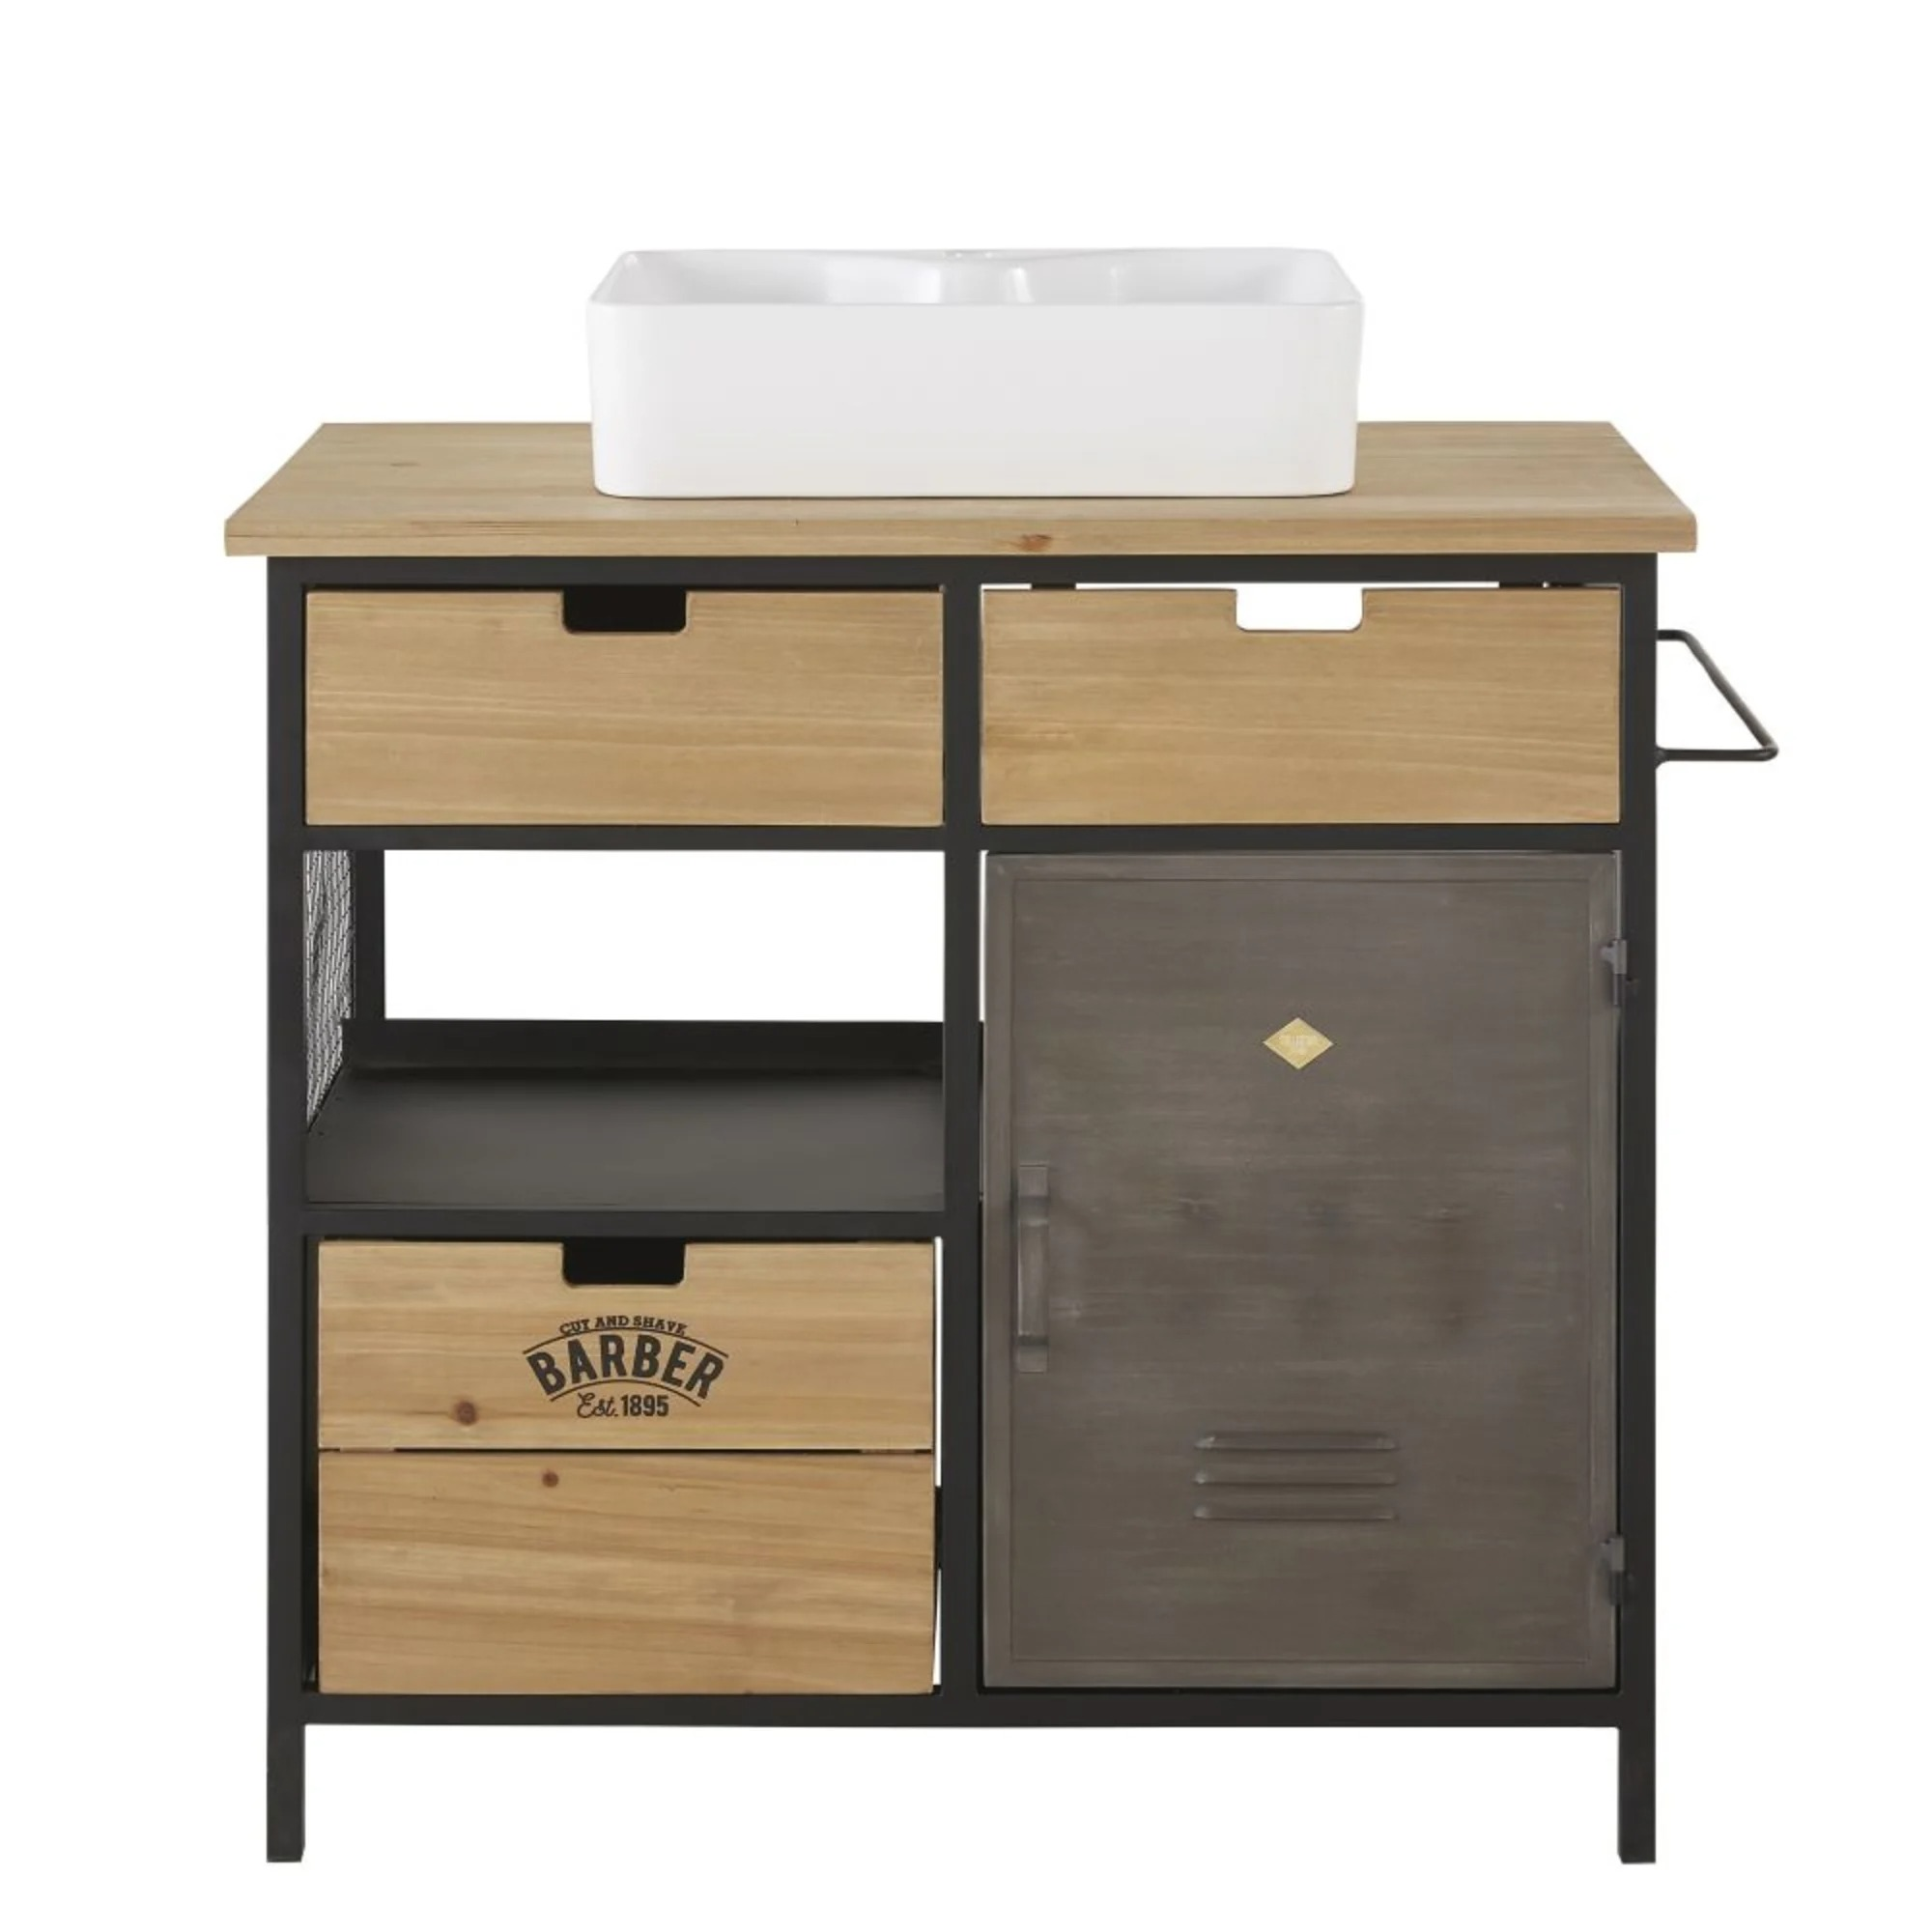 HARVEY.  Washbasin cabinet with 3 drawers and 1 door in fir and metal